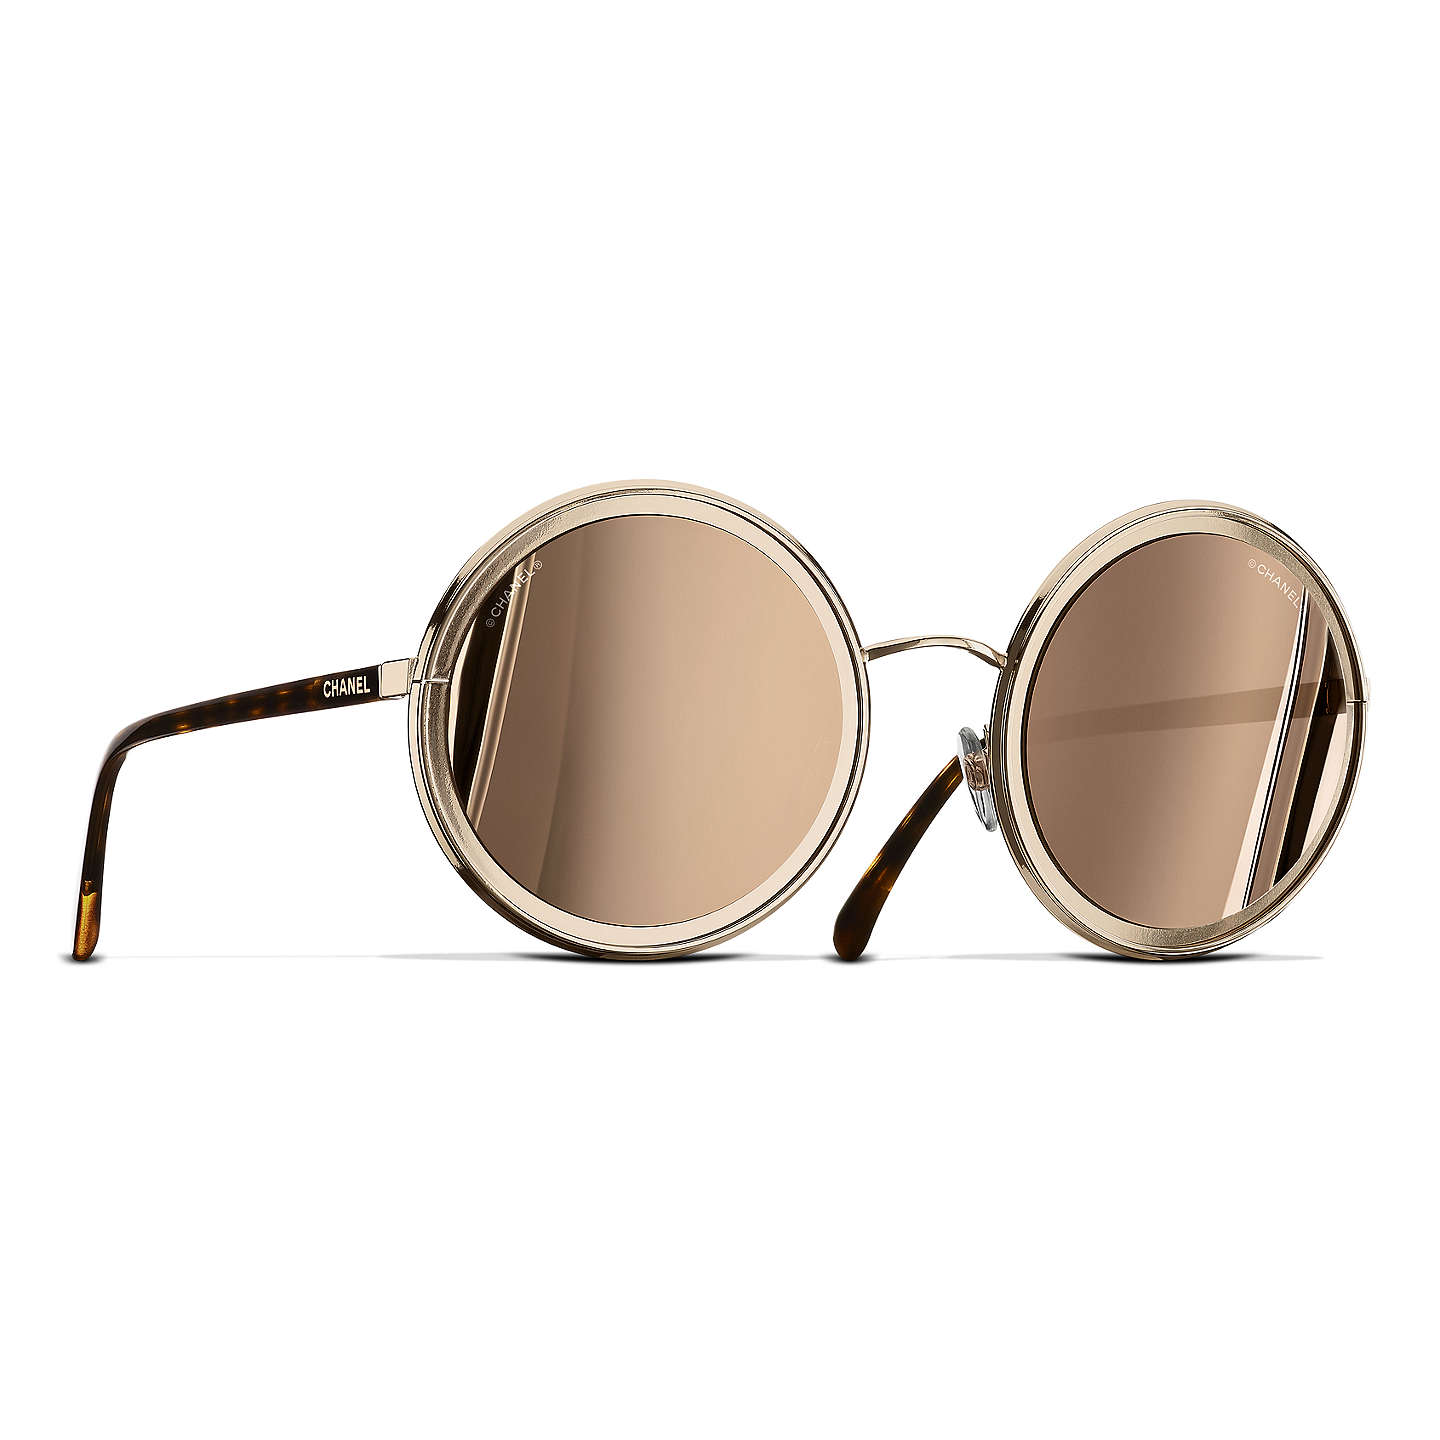 CHANEL Round Sunglasses CH4226 Gold at John Lewis